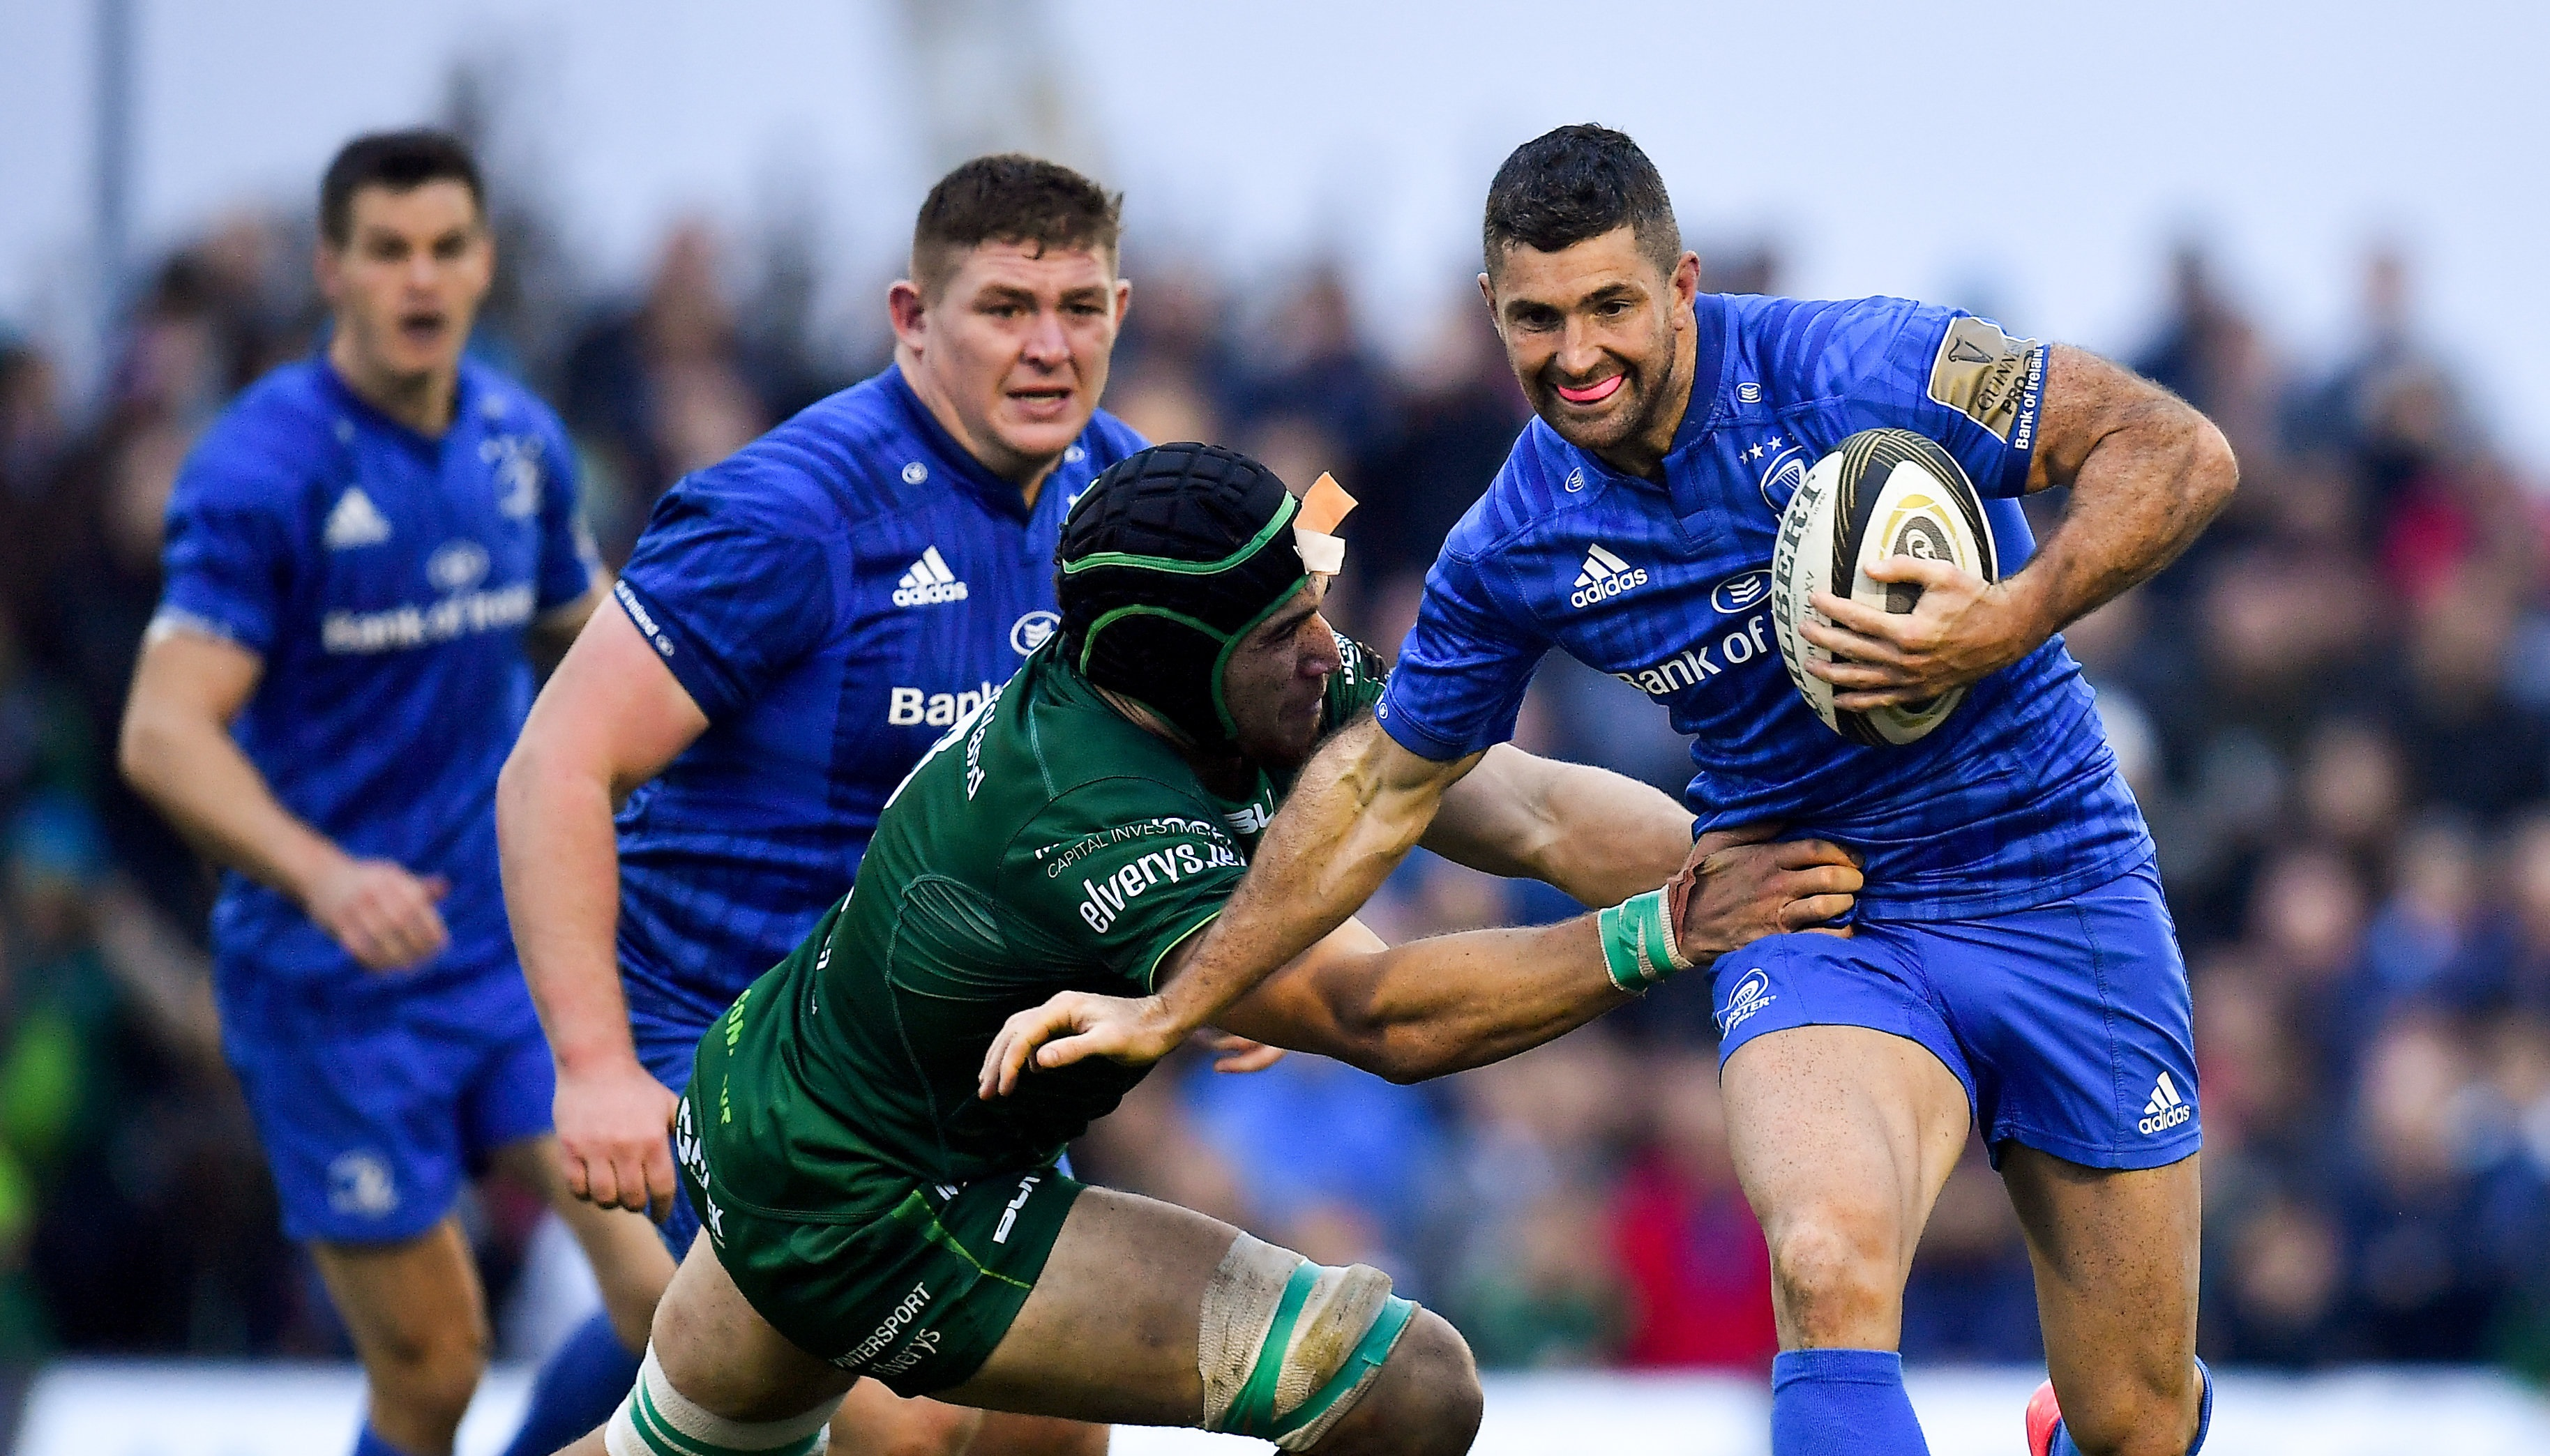 c75c488cb6e3b Leinster Rugby | Guinness PRO14 highlights: Connacht 3 Leinster 20